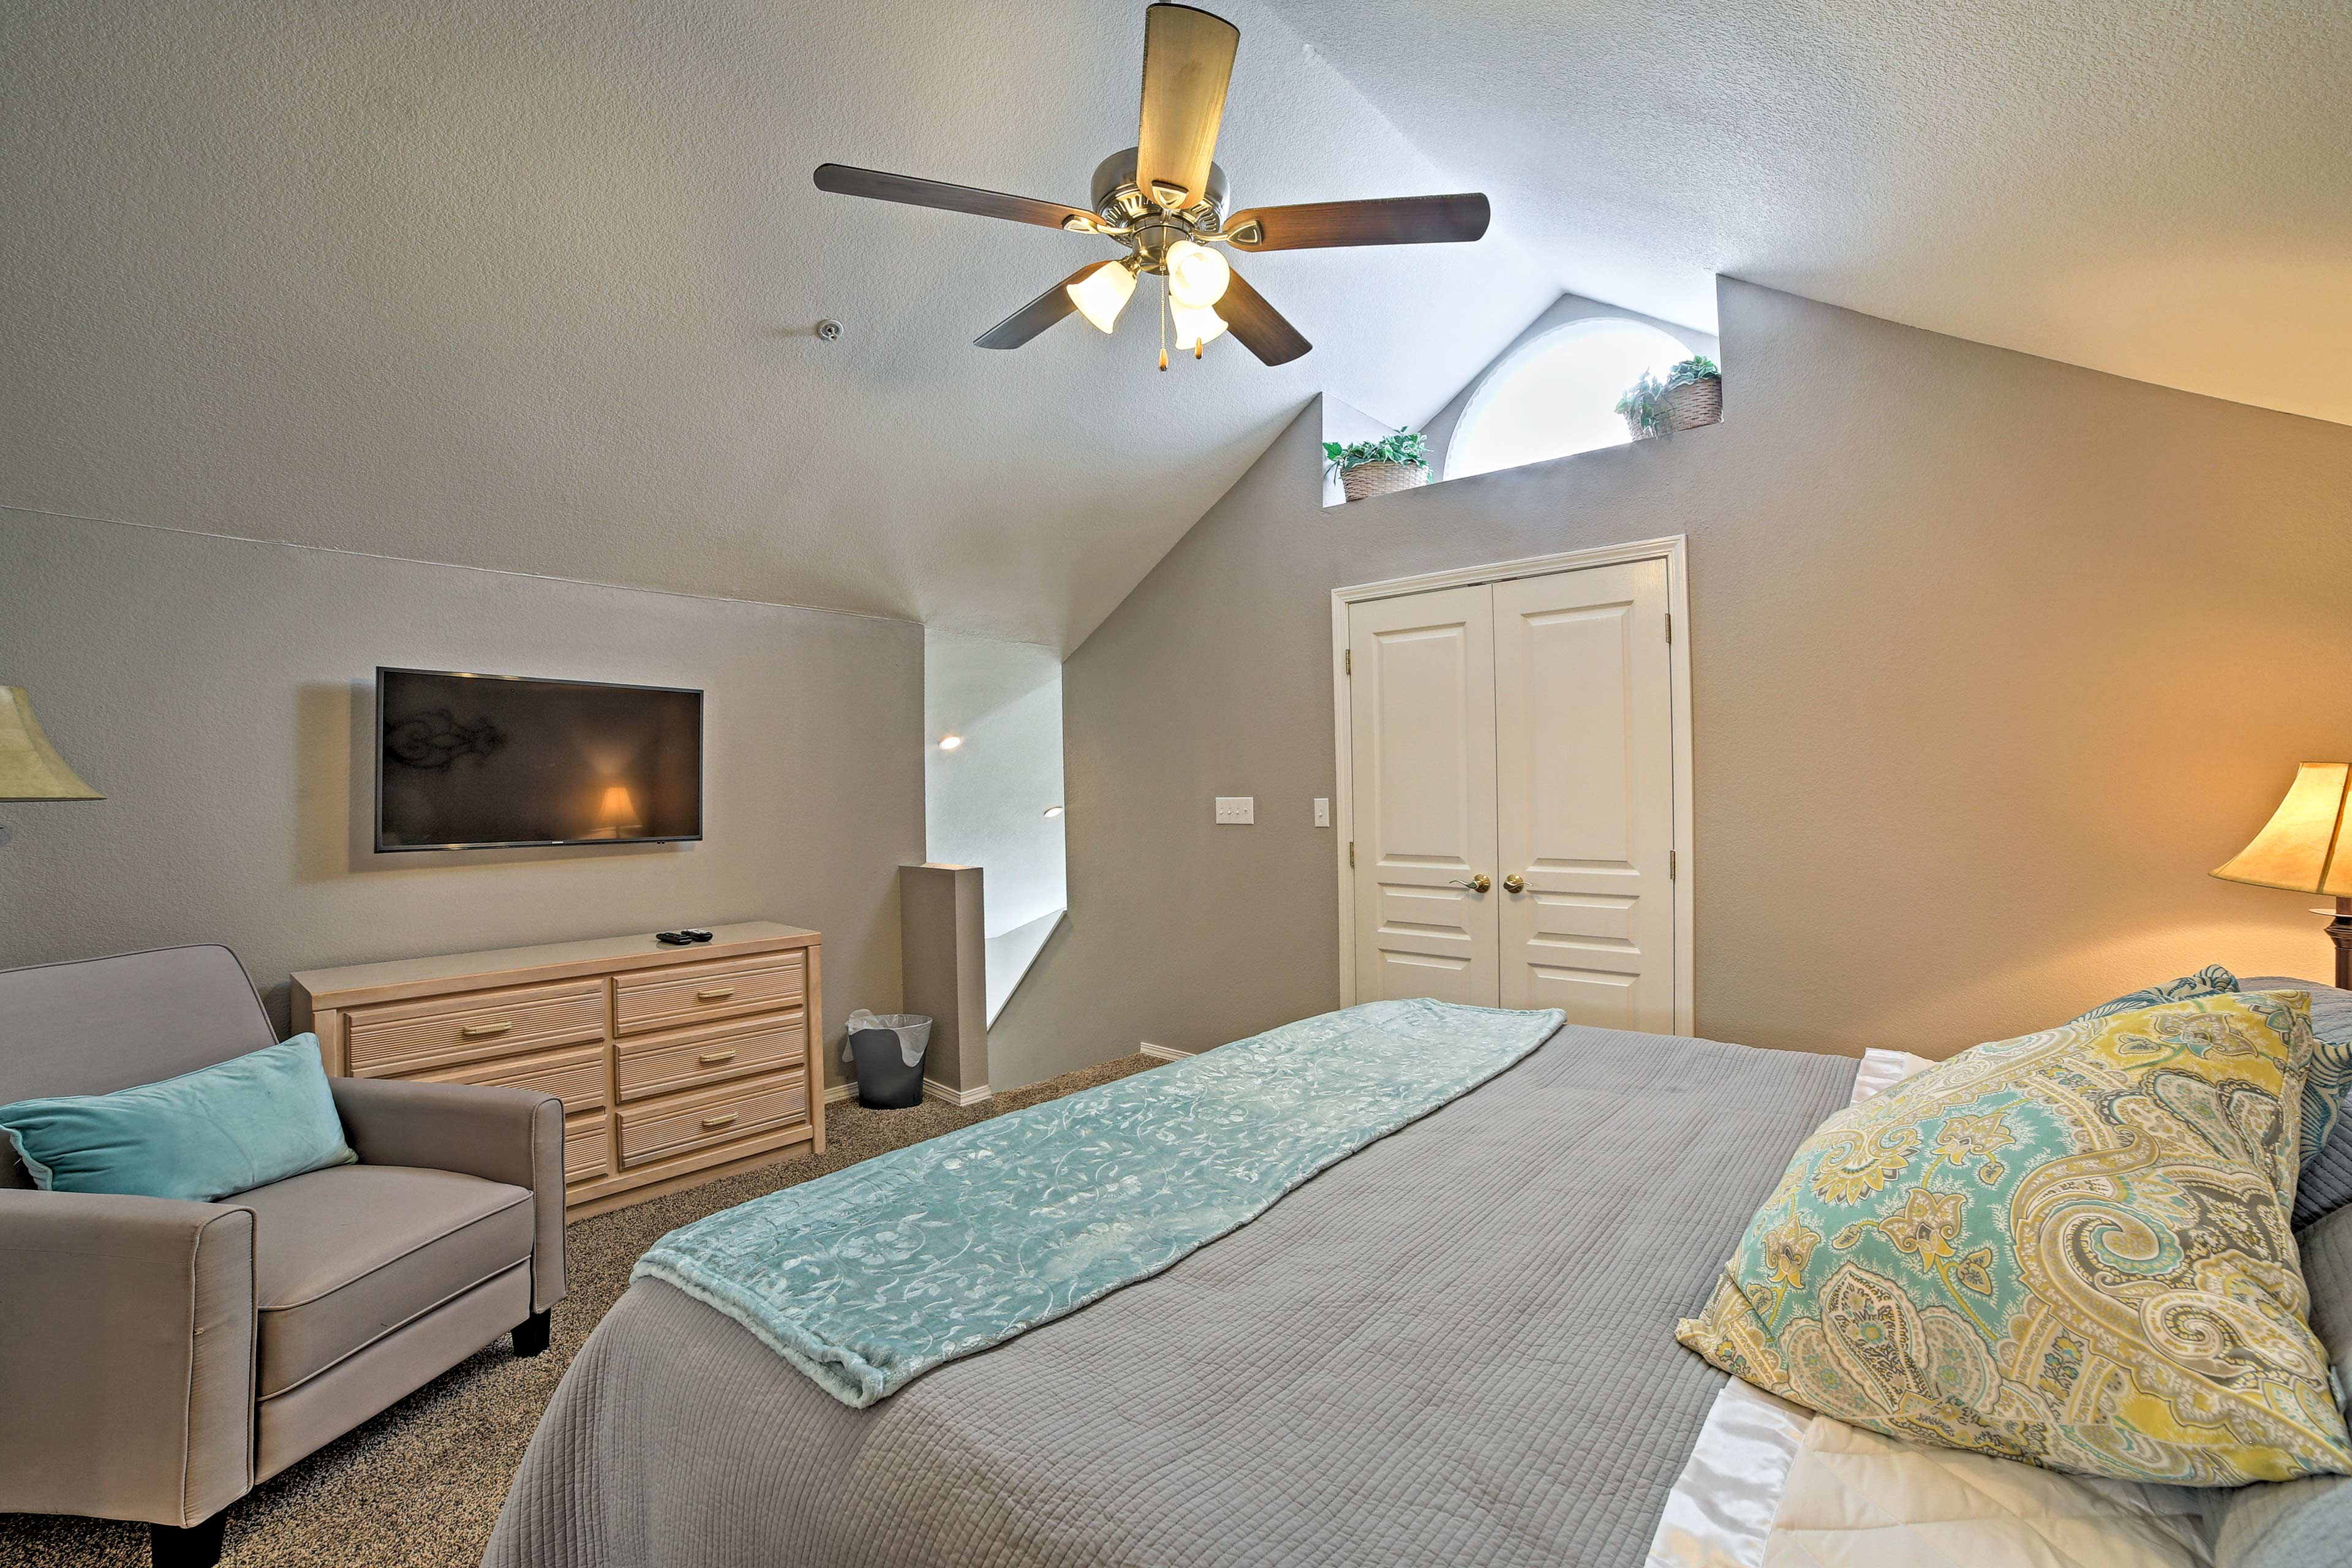 The loft bedroom is both private and elegant.